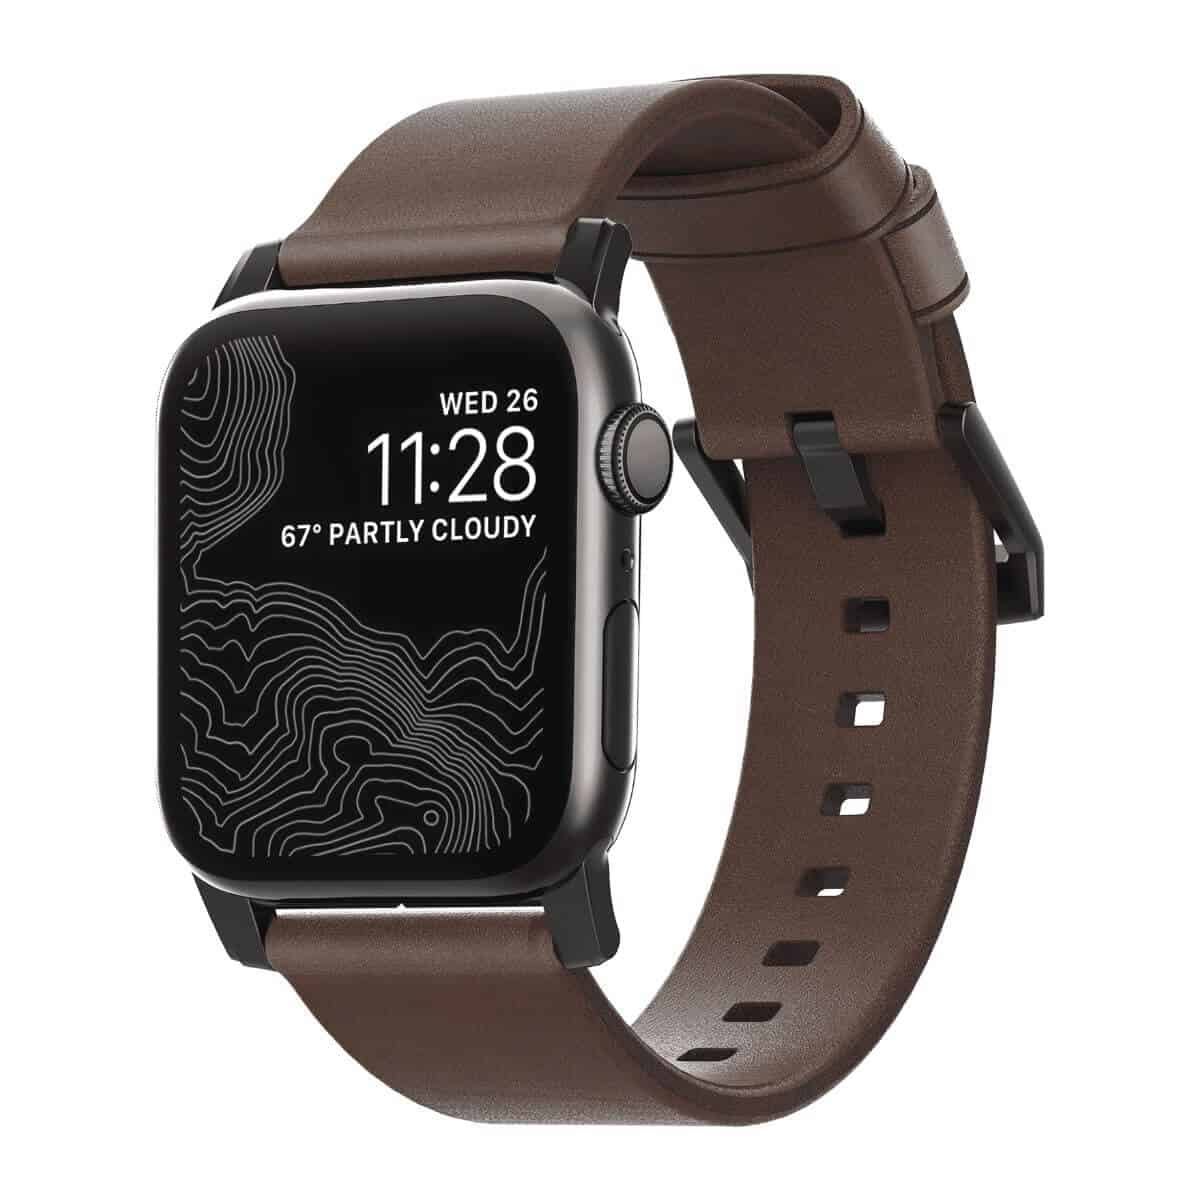 Apple Watch with a dark brown leather strap.